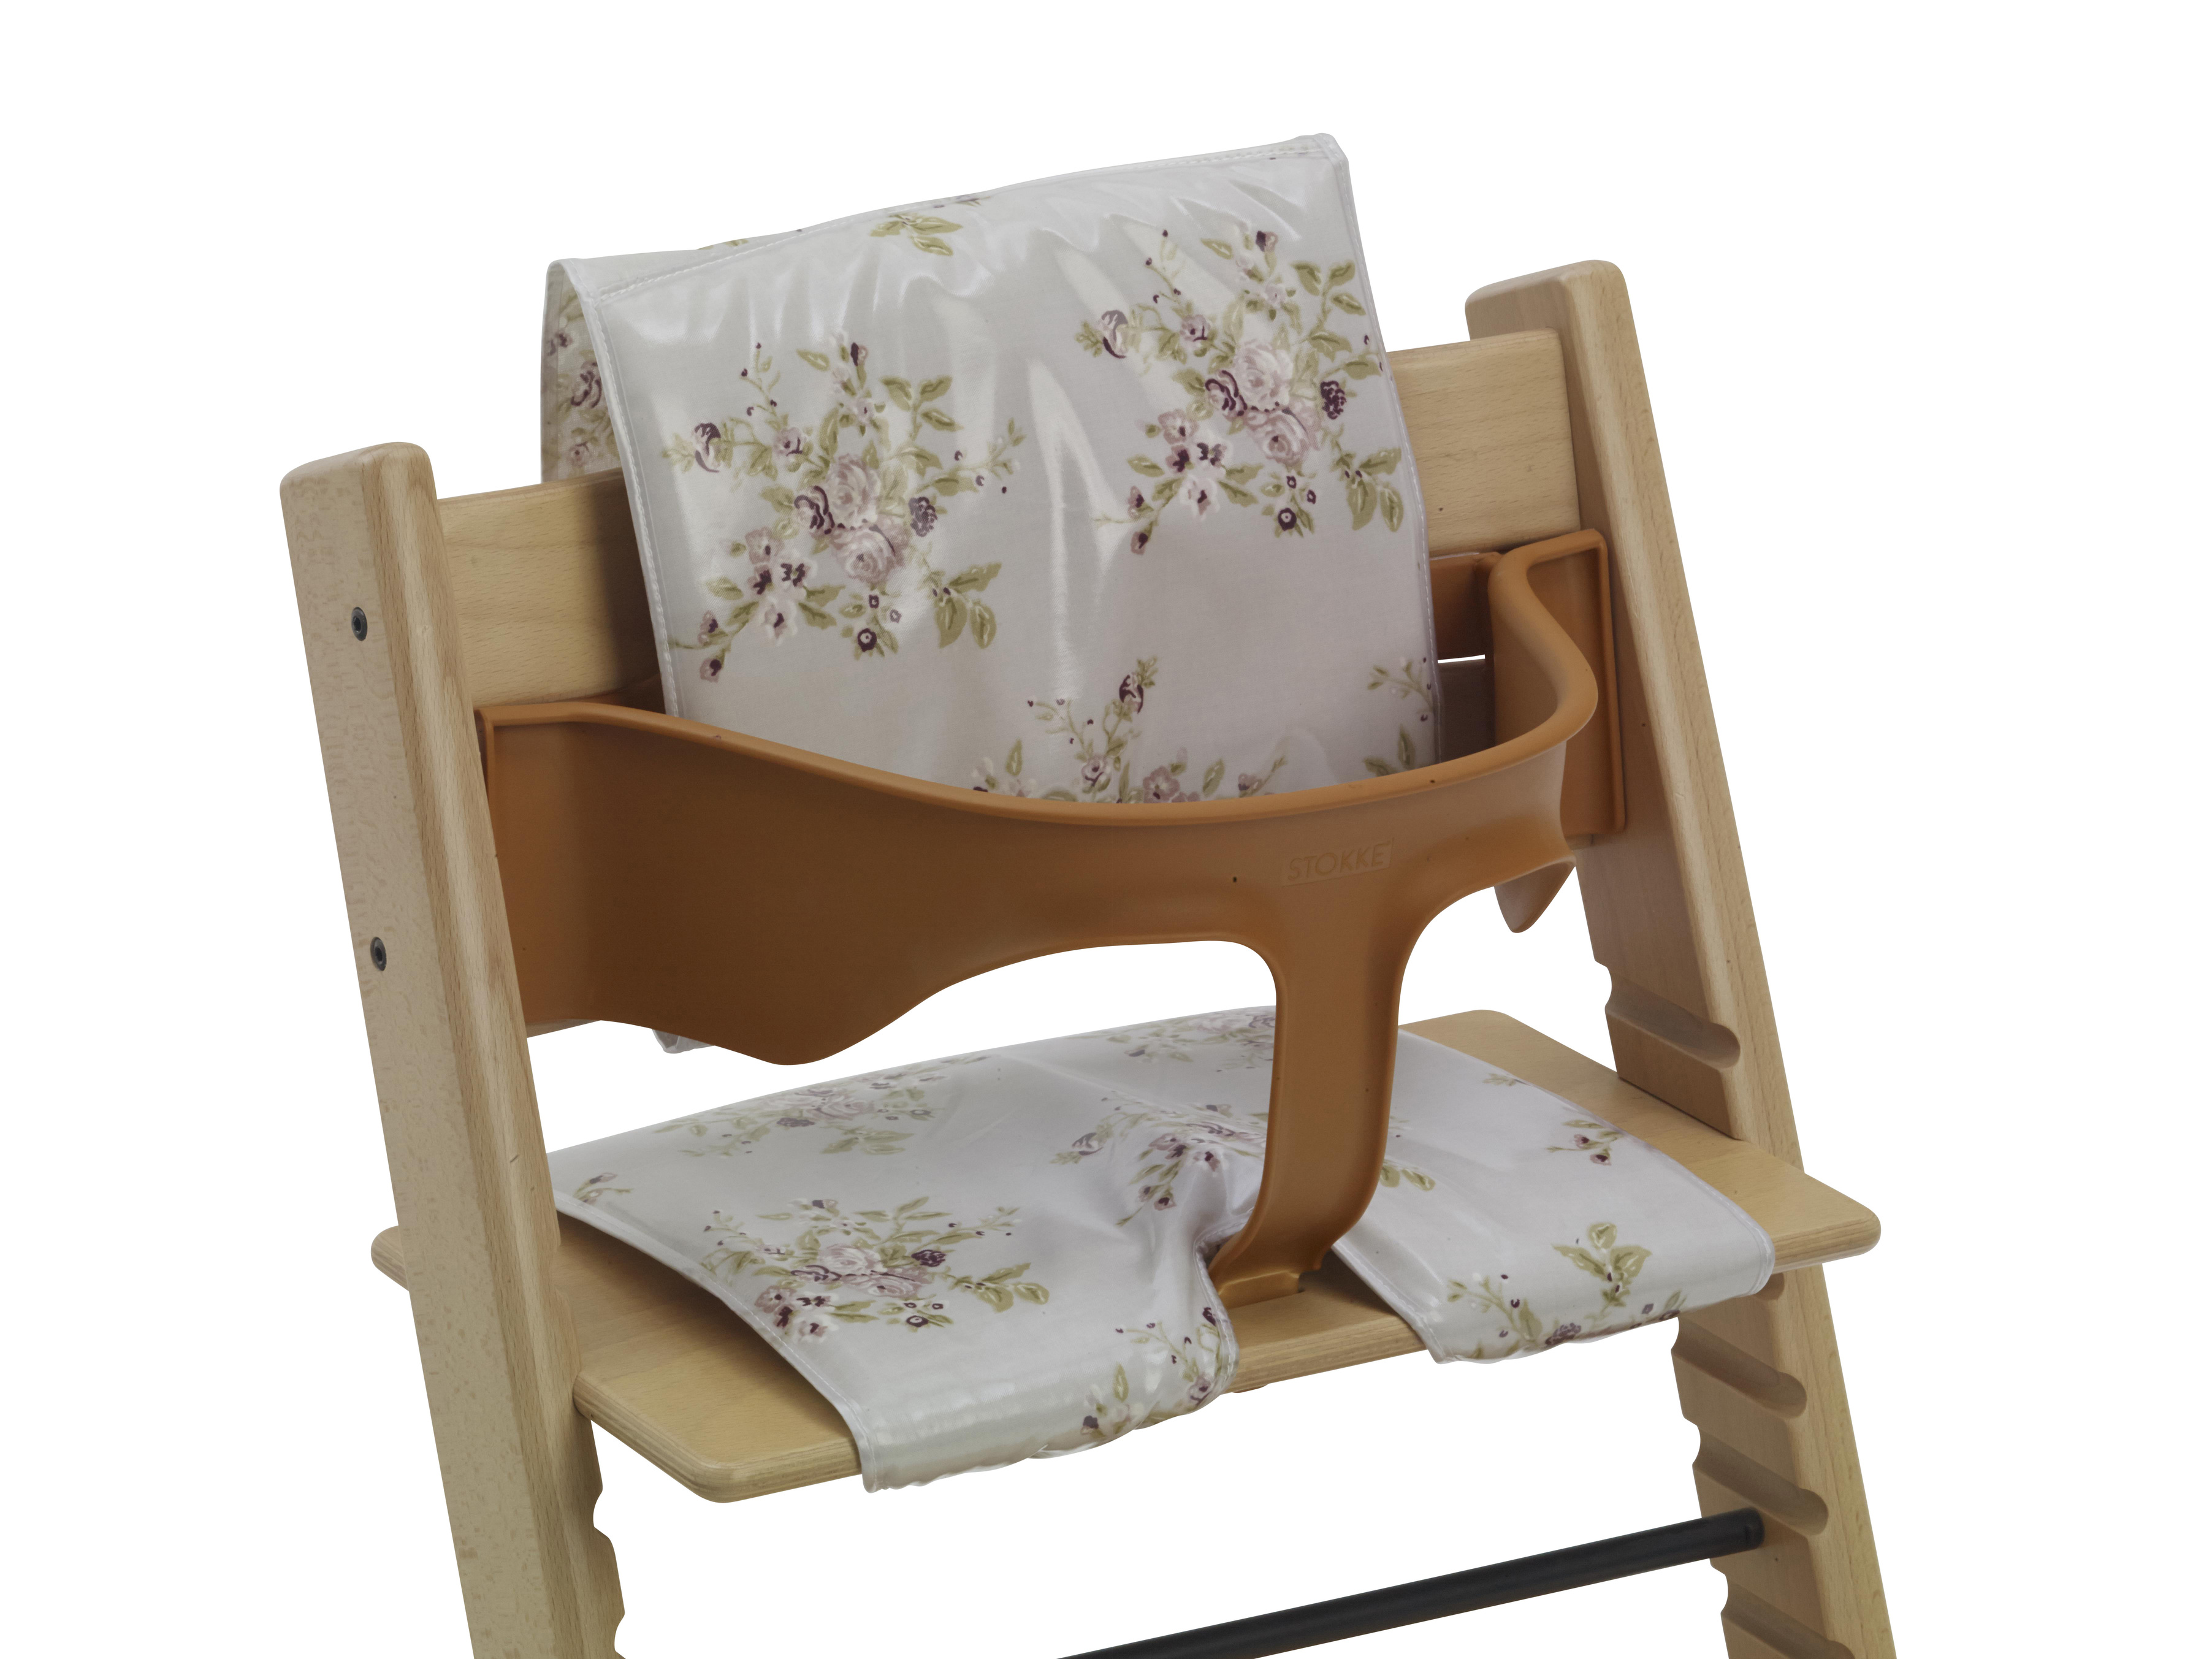 High Chair Cushions Suitable for Tripp Trapp and Loubilou